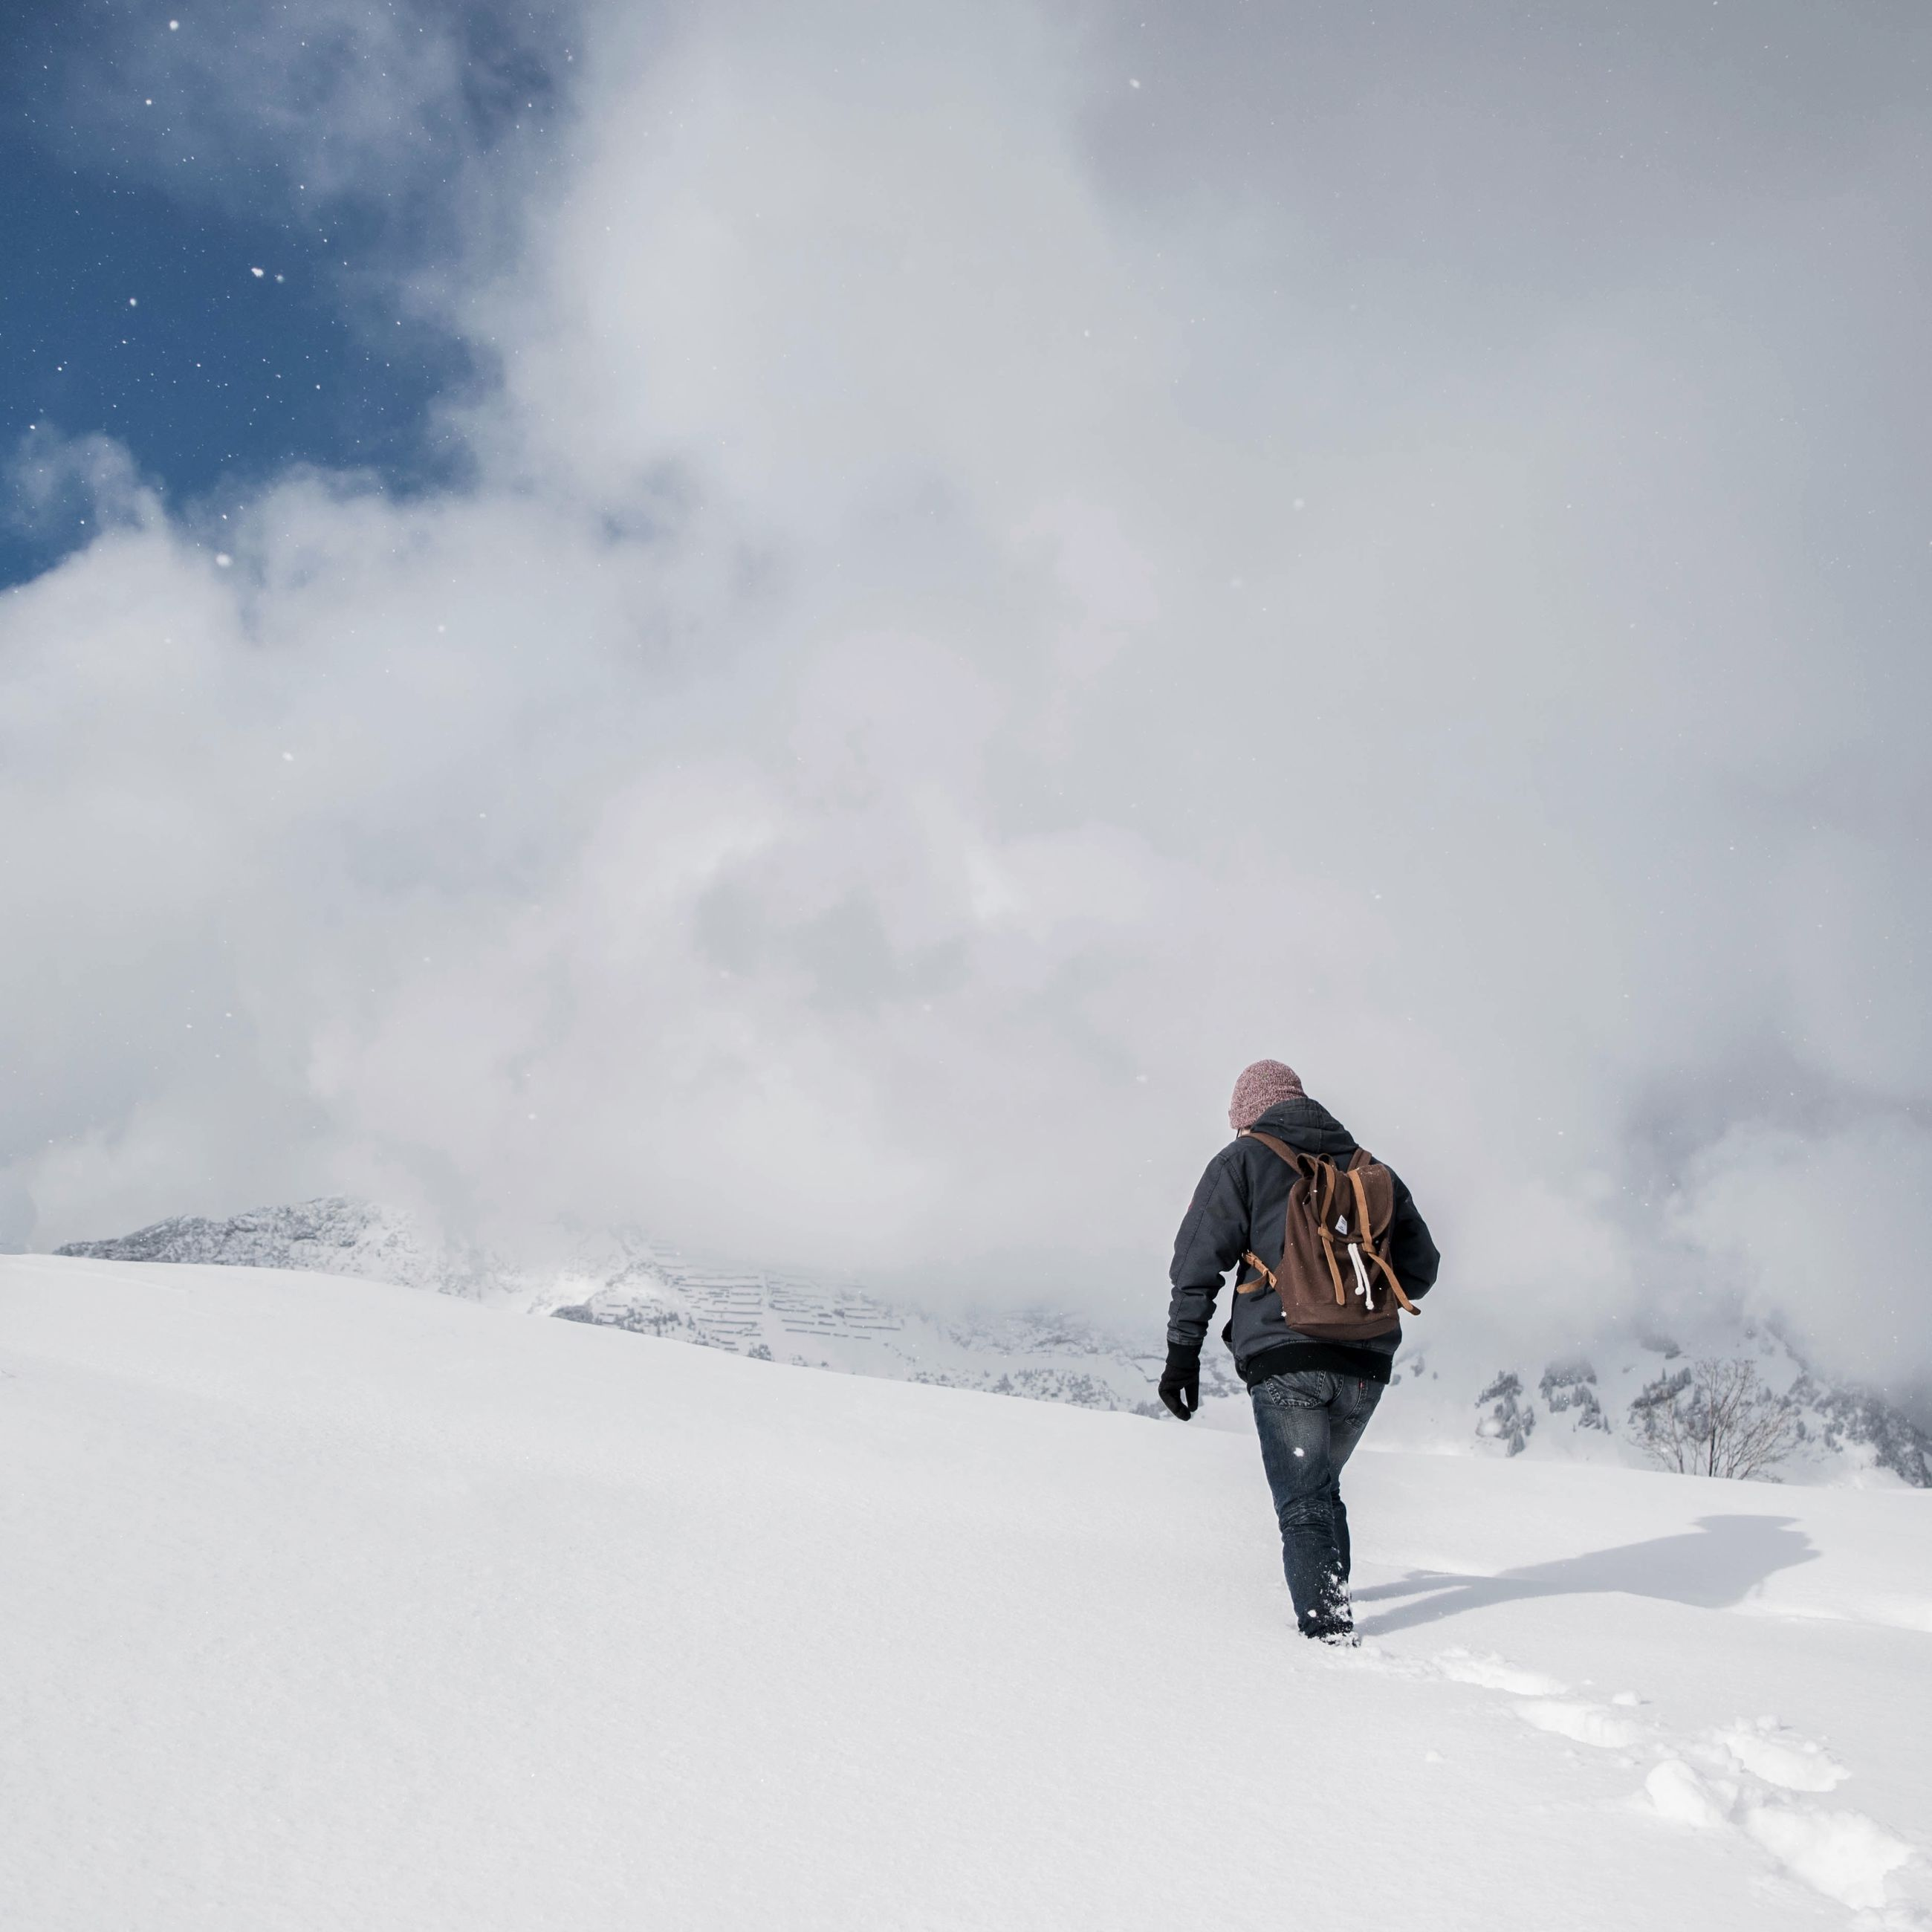 snow, winter, cold temperature, season, leisure activity, lifestyles, weather, full length, rear view, mountain, warm clothing, walking, men, landscape, sky, tranquil scene, covering, tranquility